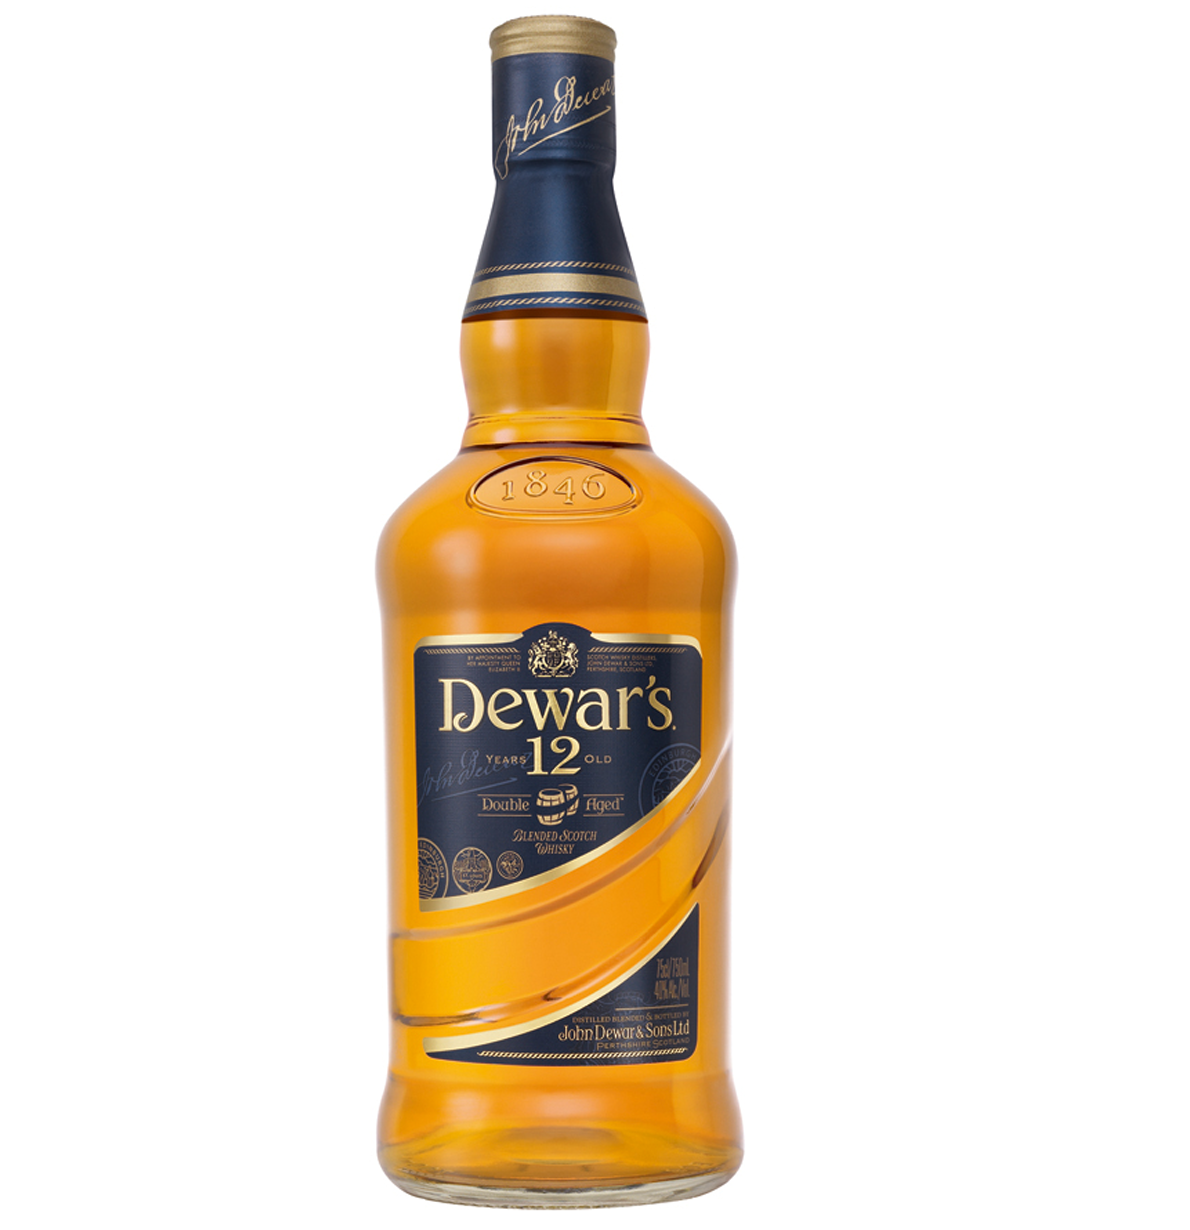 Dewar's 12 Year Double Aged Blended Scotch Whisky